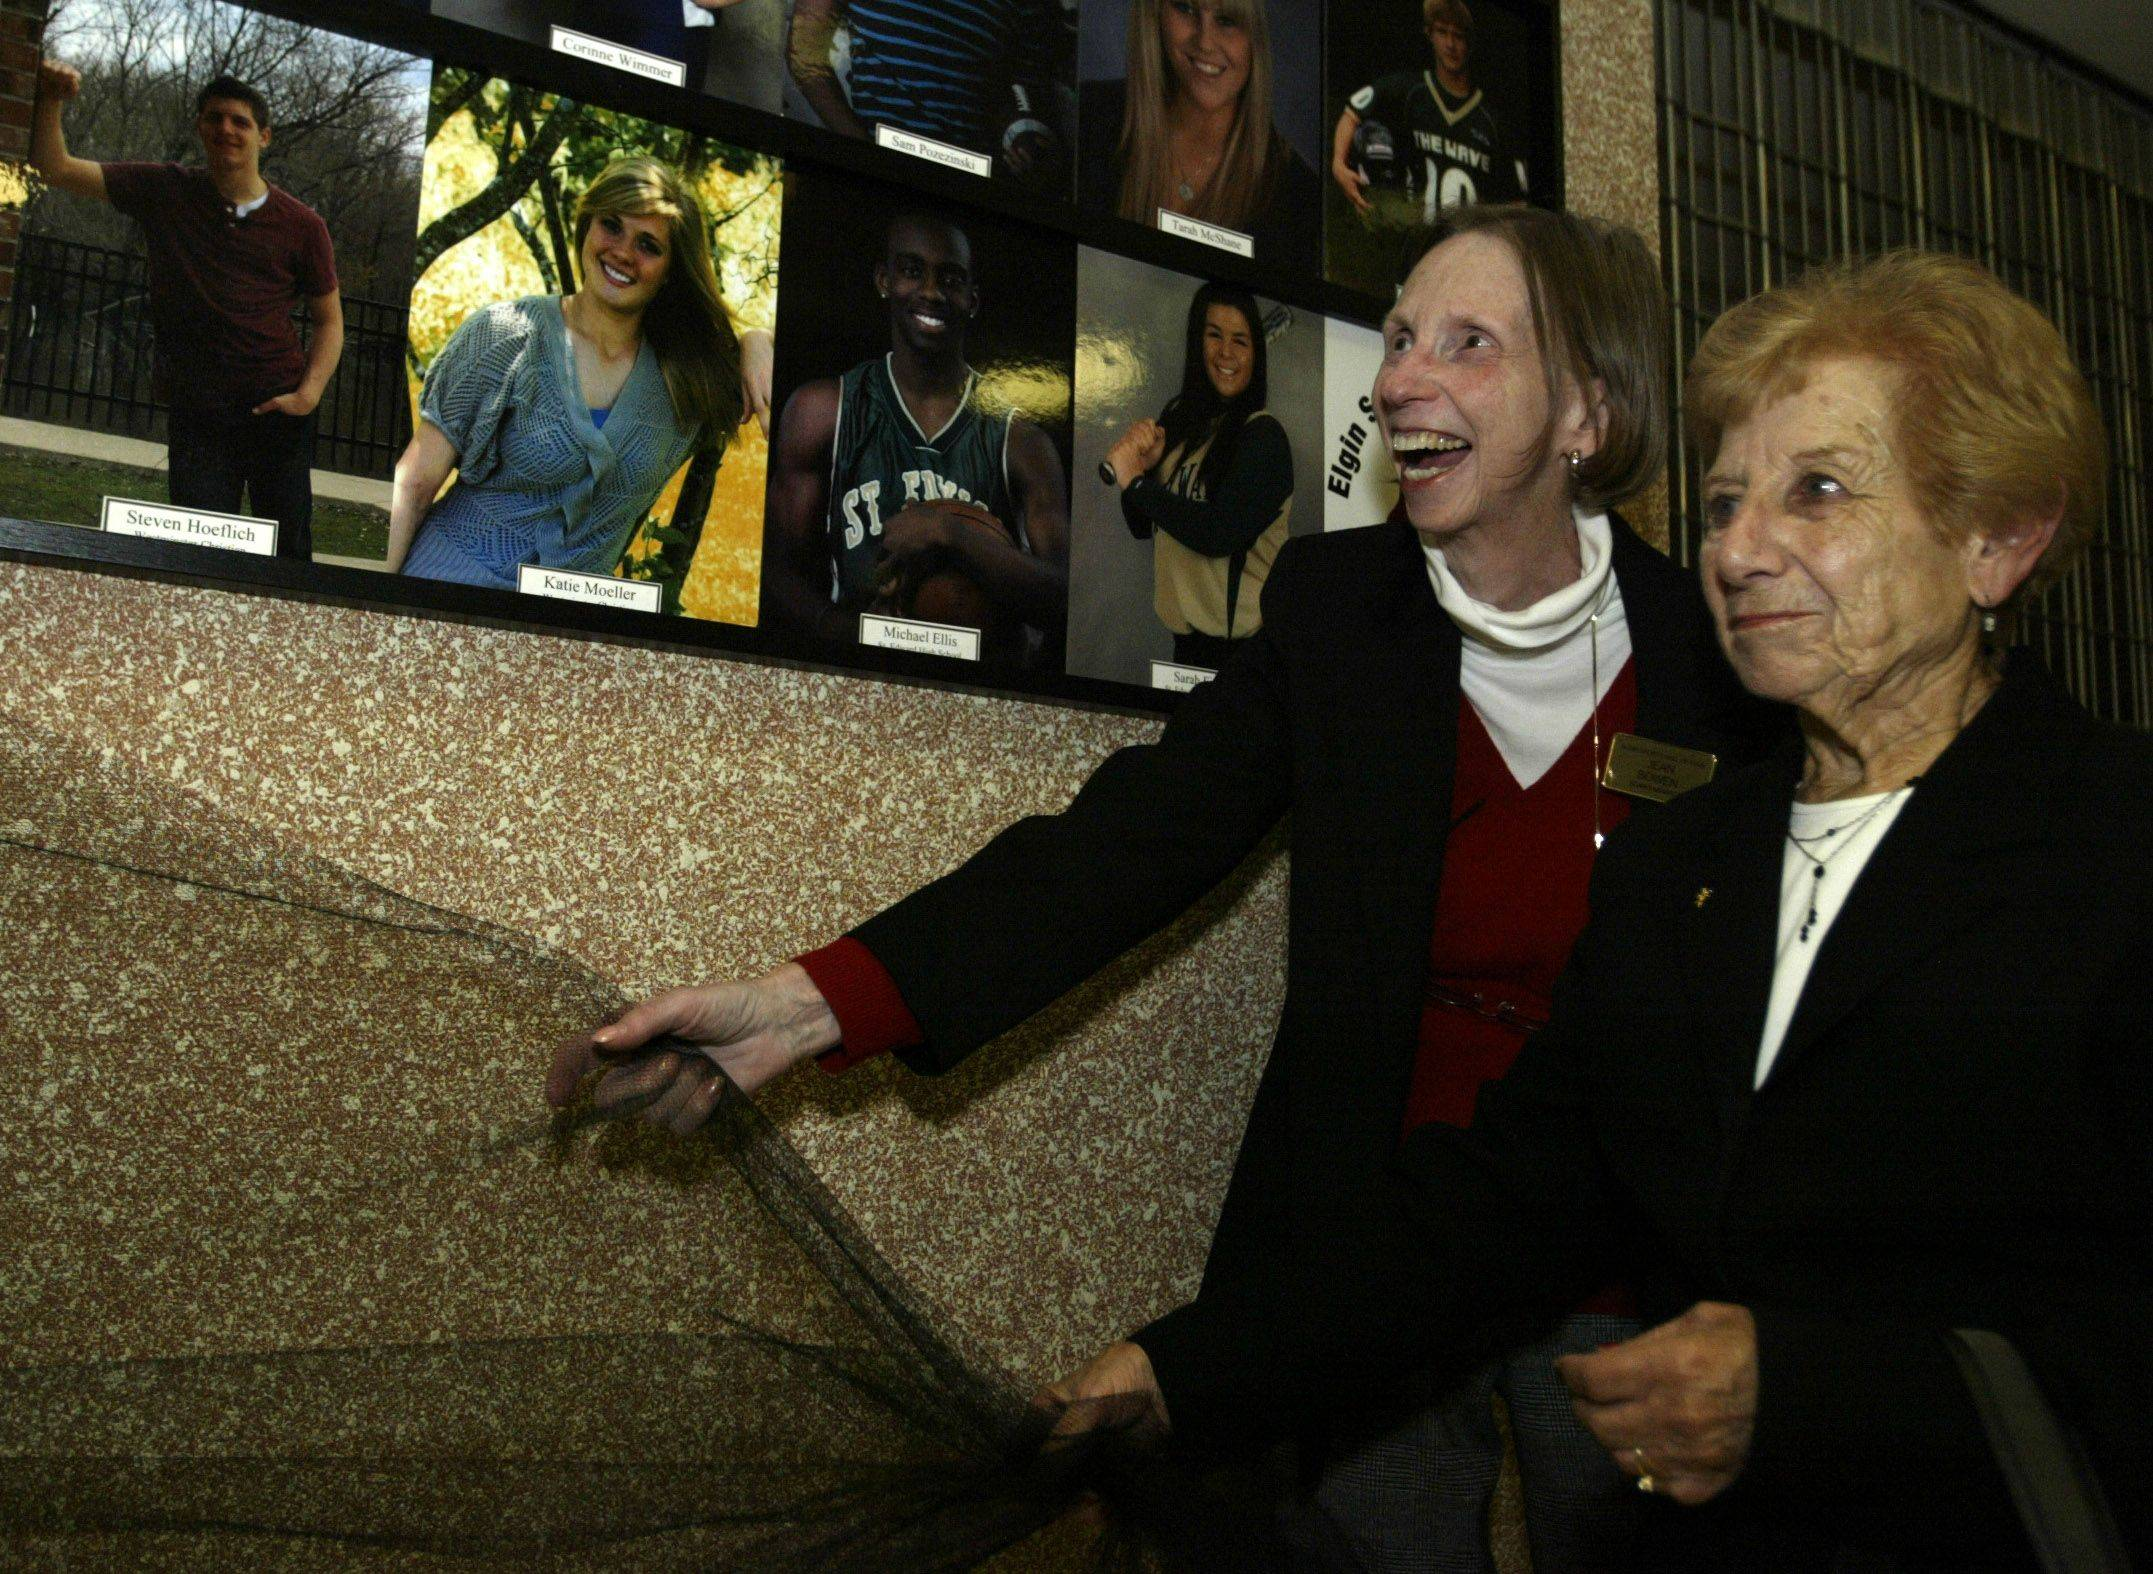 Jean Bowen, left, a member of the Elgin Sports Hall of Fame board of directors, and Helen McCulloch help unveil the new ESHOF's Wall of Fame Sunday at The Centre of Elgin. McCulloch's brother, Vic Masi, has a plaque on the wall for the Masi Serice Awardm which is presented to someone each year who shows pride in the Elgin community.